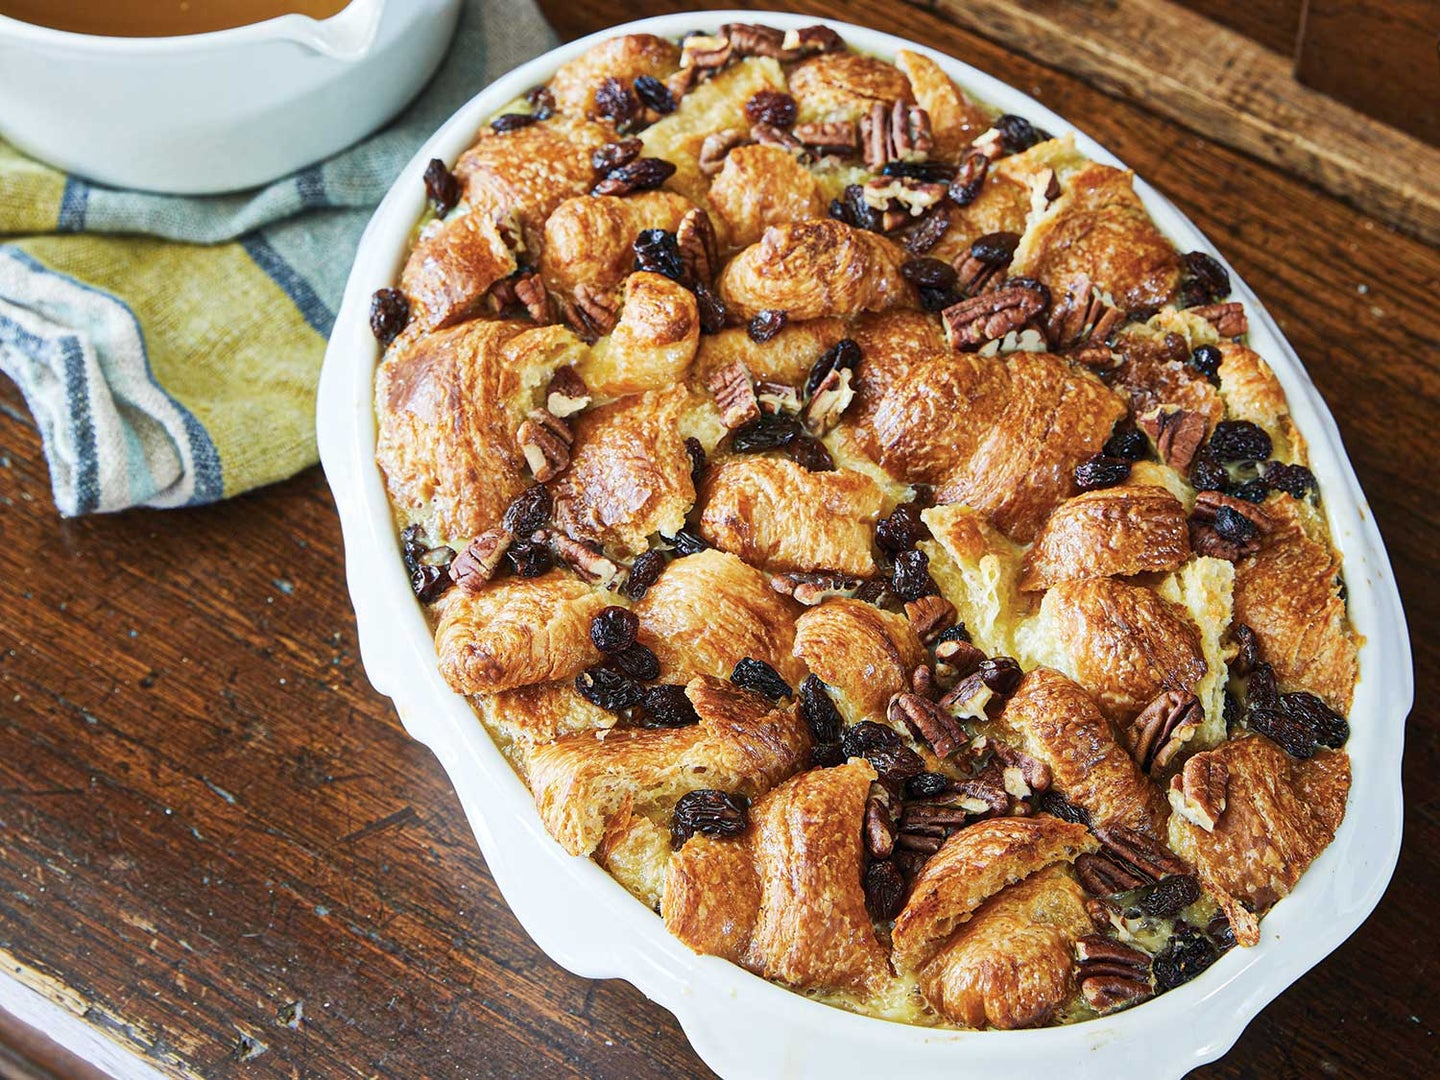 Sarah Gray Miller's Croissant Bread Pudding with Bourbon Sauce